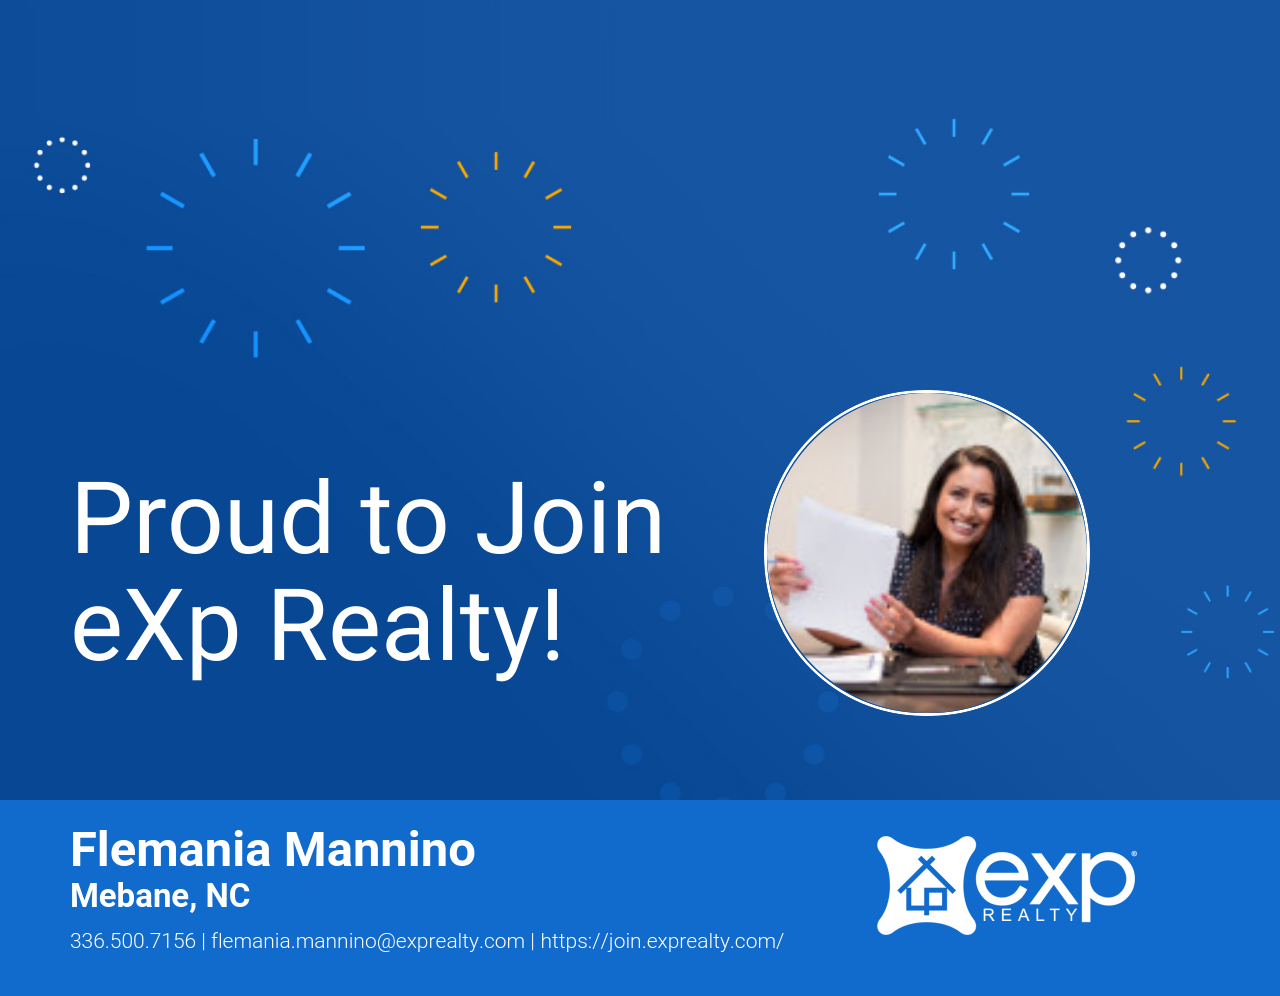 Flemania Mannino Joined eXp Realty!